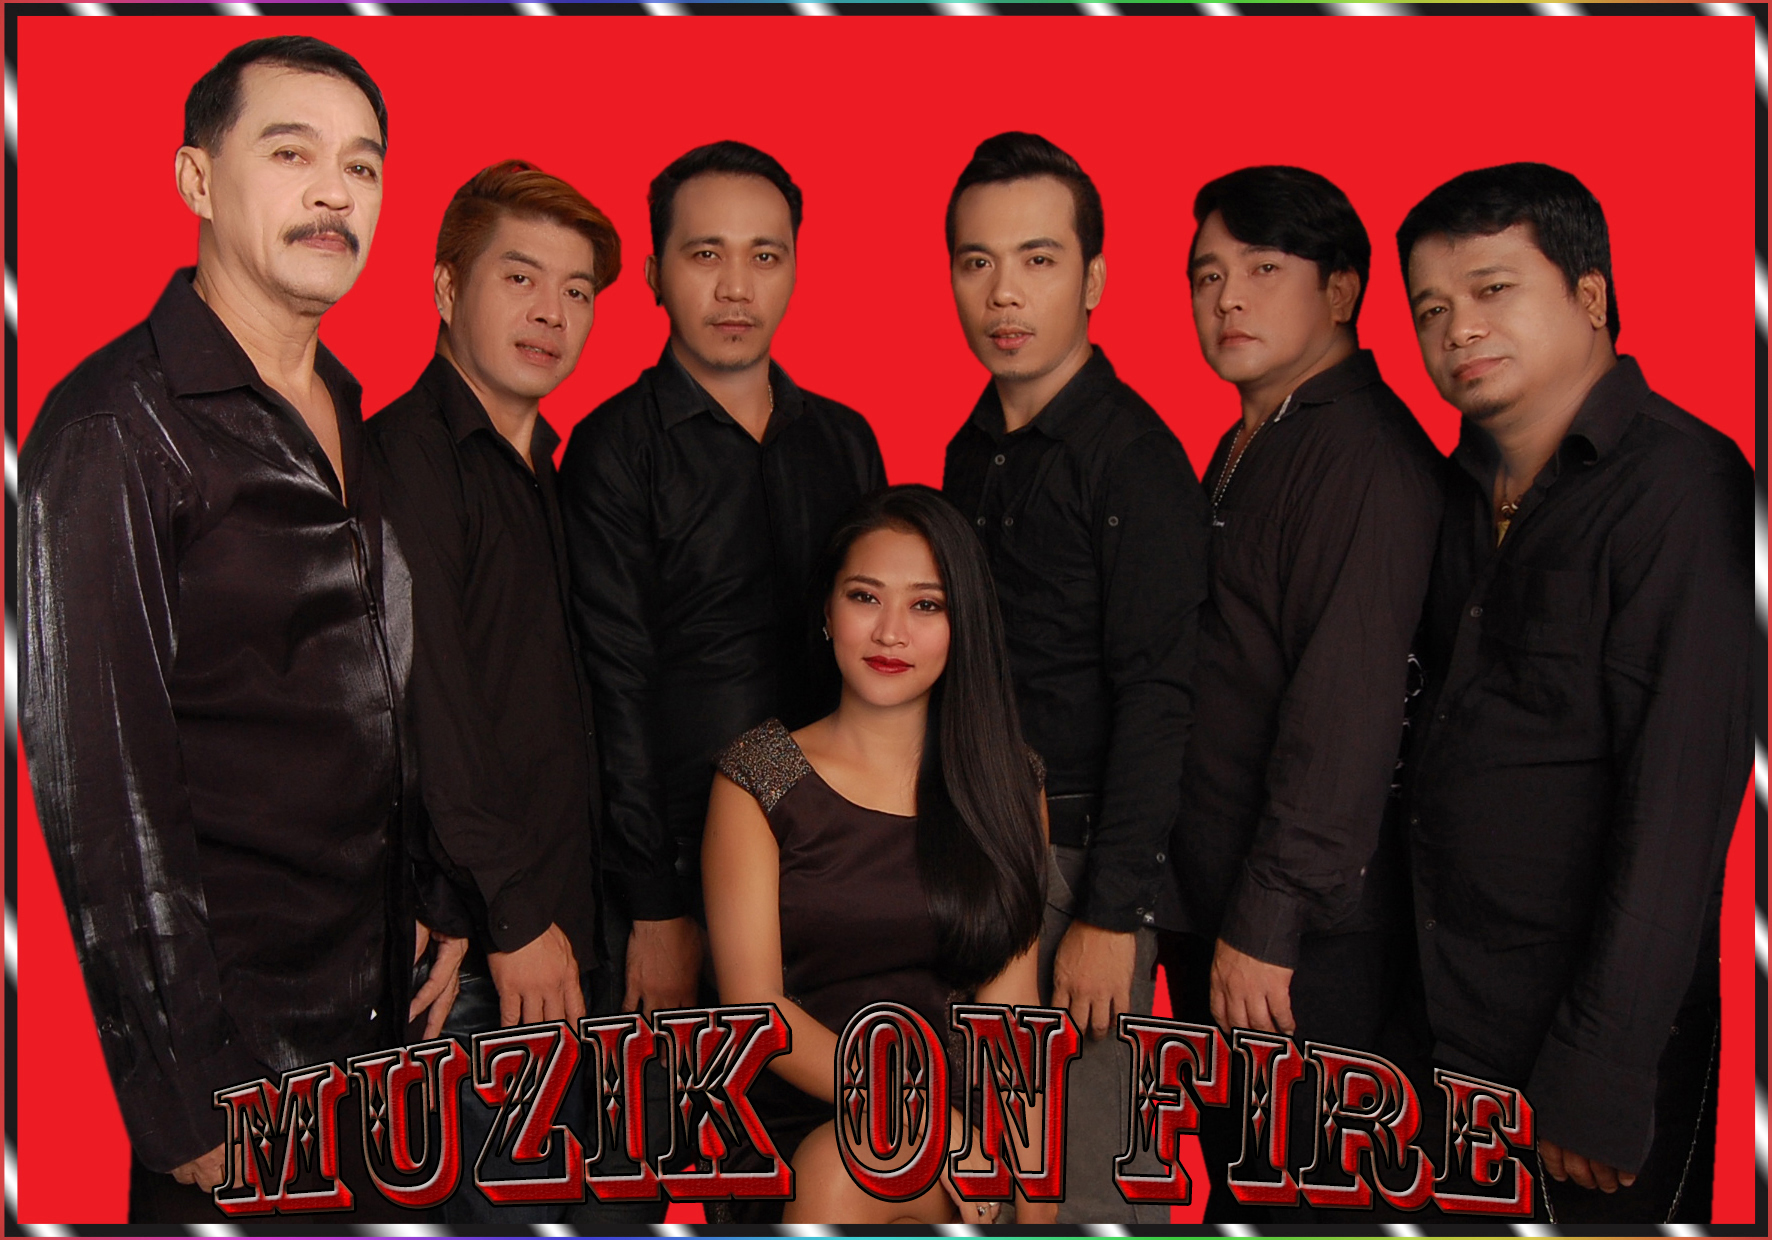 Muzik_on_fire_picture_1